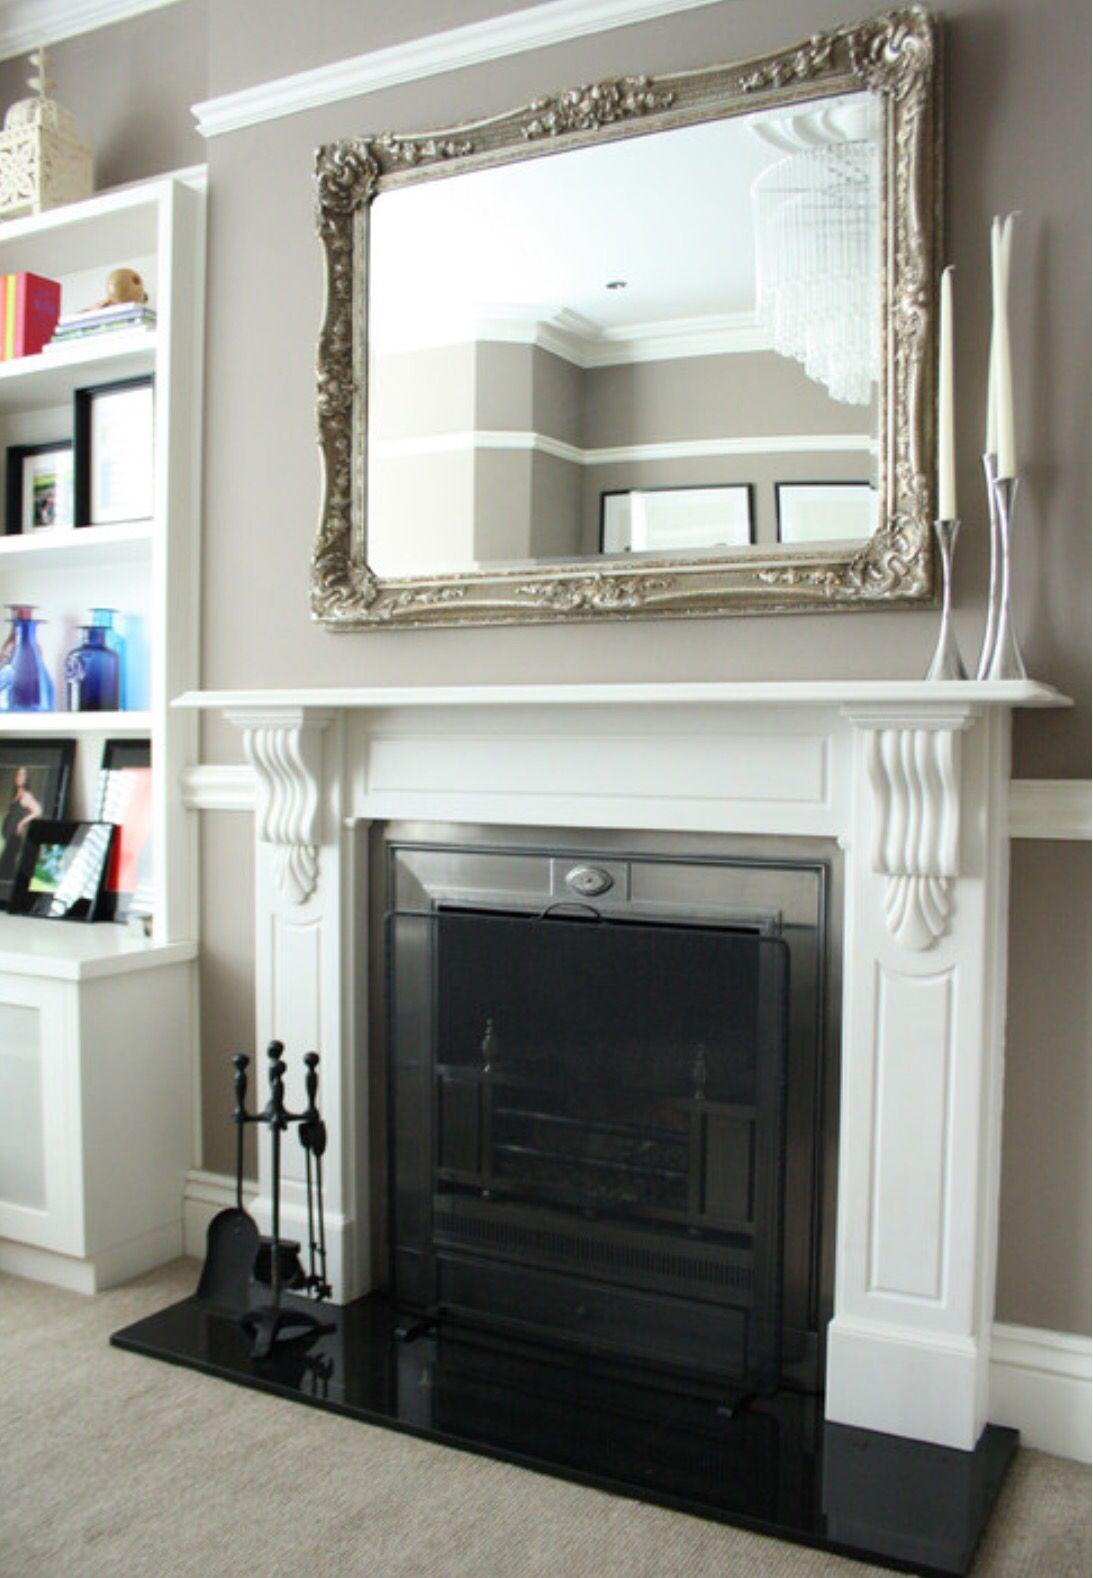 How To Make A Bookshelf Headboard Mirror Above Fireplace Living